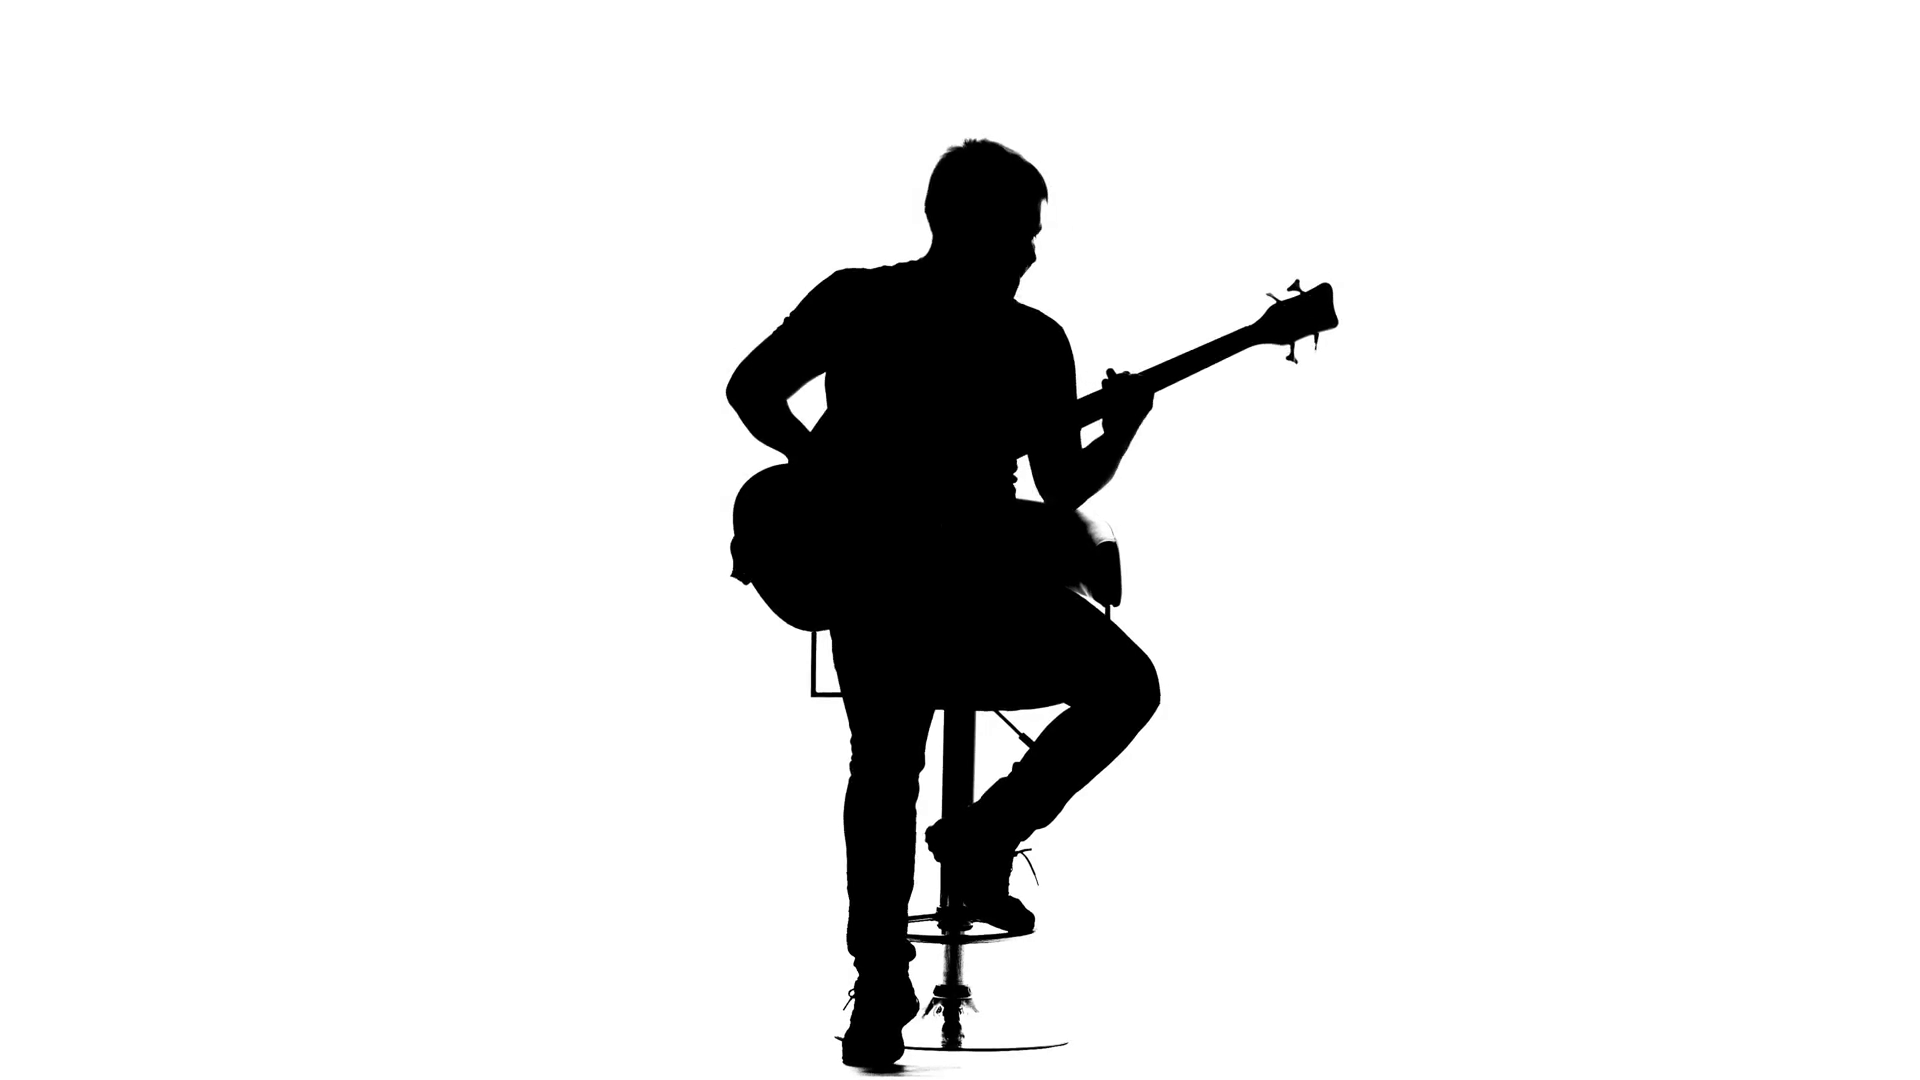 man with guitar silhouette man playing guitar silhouette free vector silhouettes with silhouette guitar man